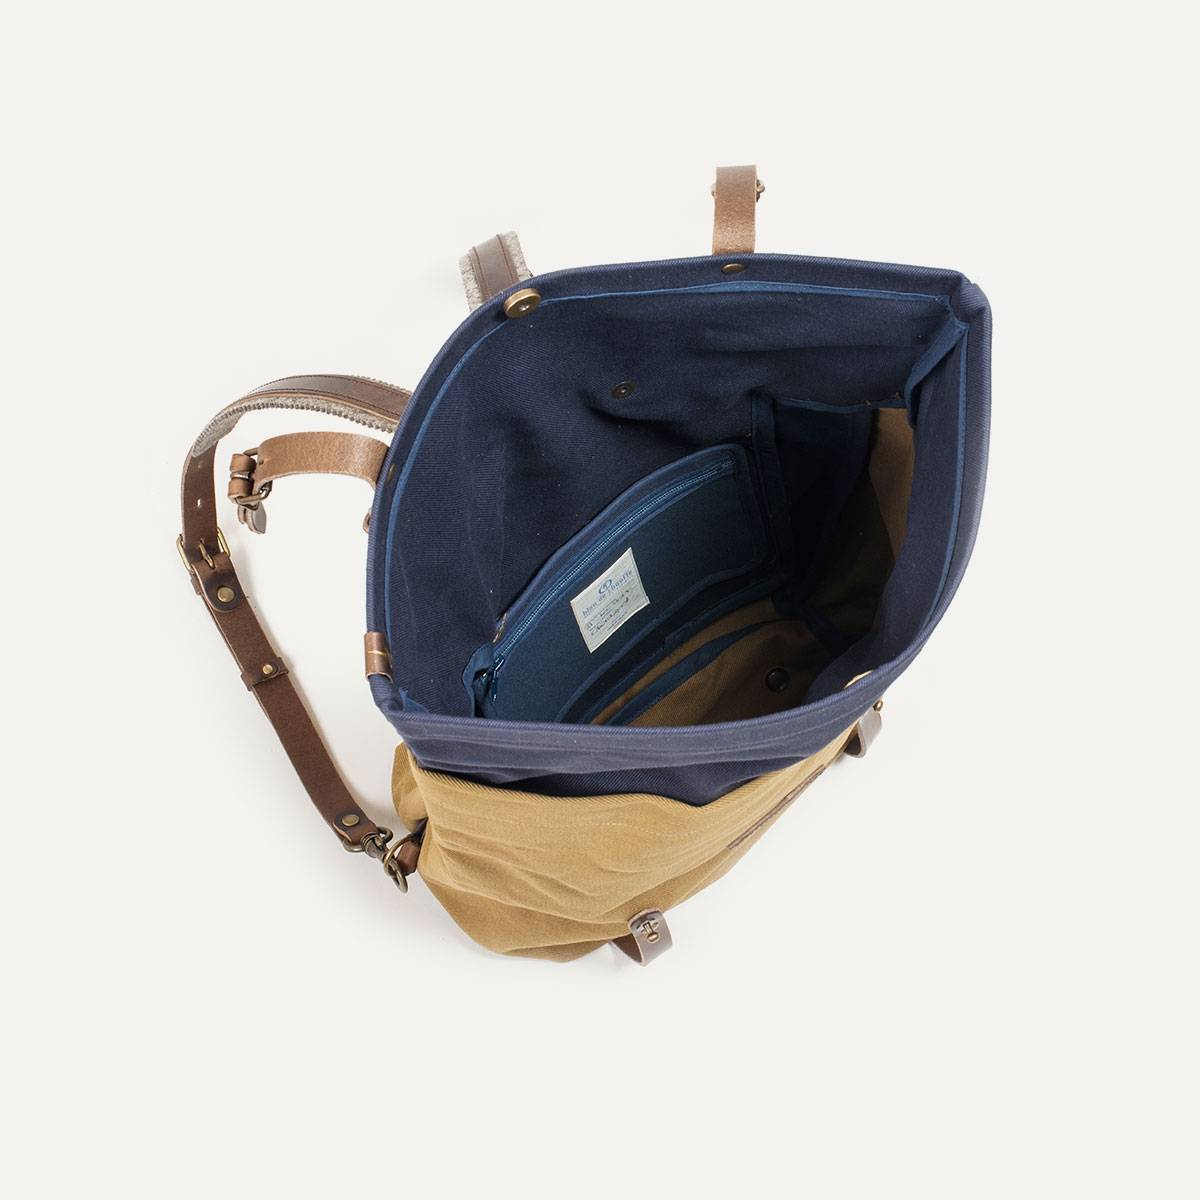 Blitz Motorcycles Scout Backpack - Navy/Camel (image n°6)